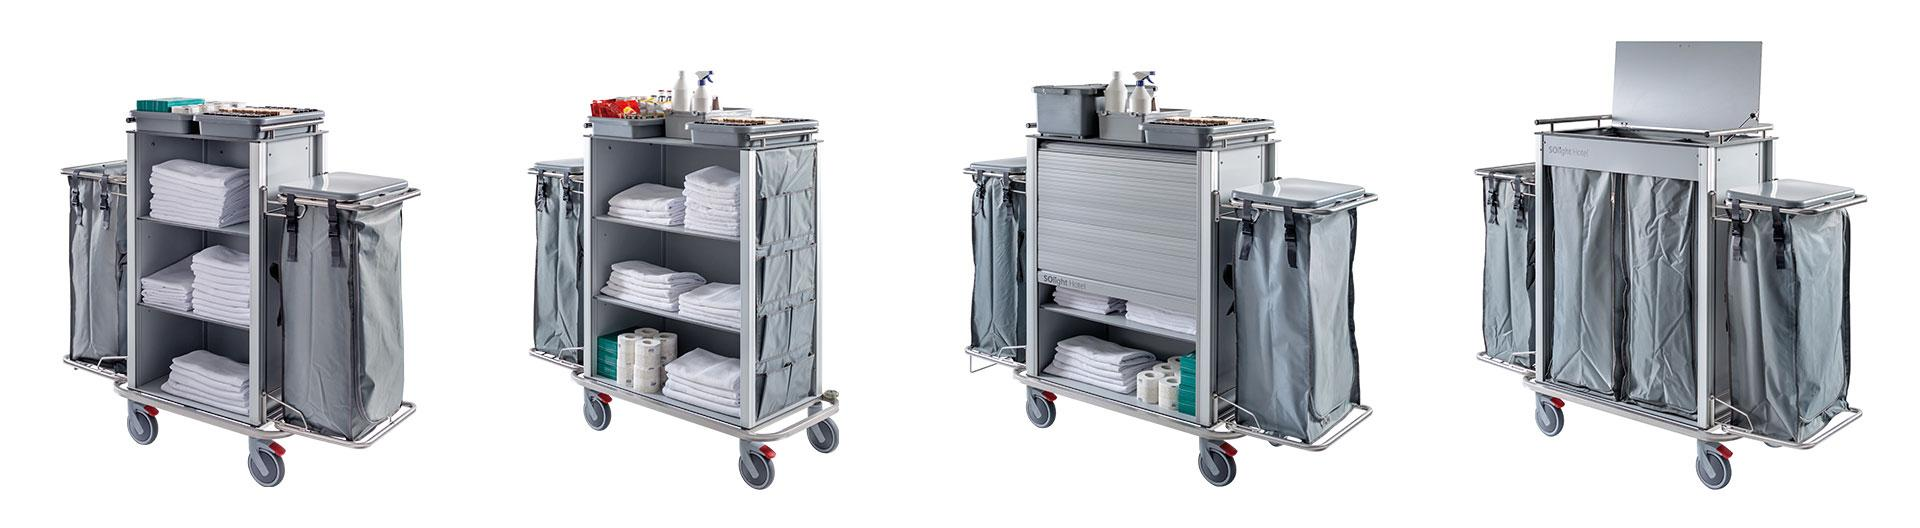 Solight Housekeeping trolleys for hotel